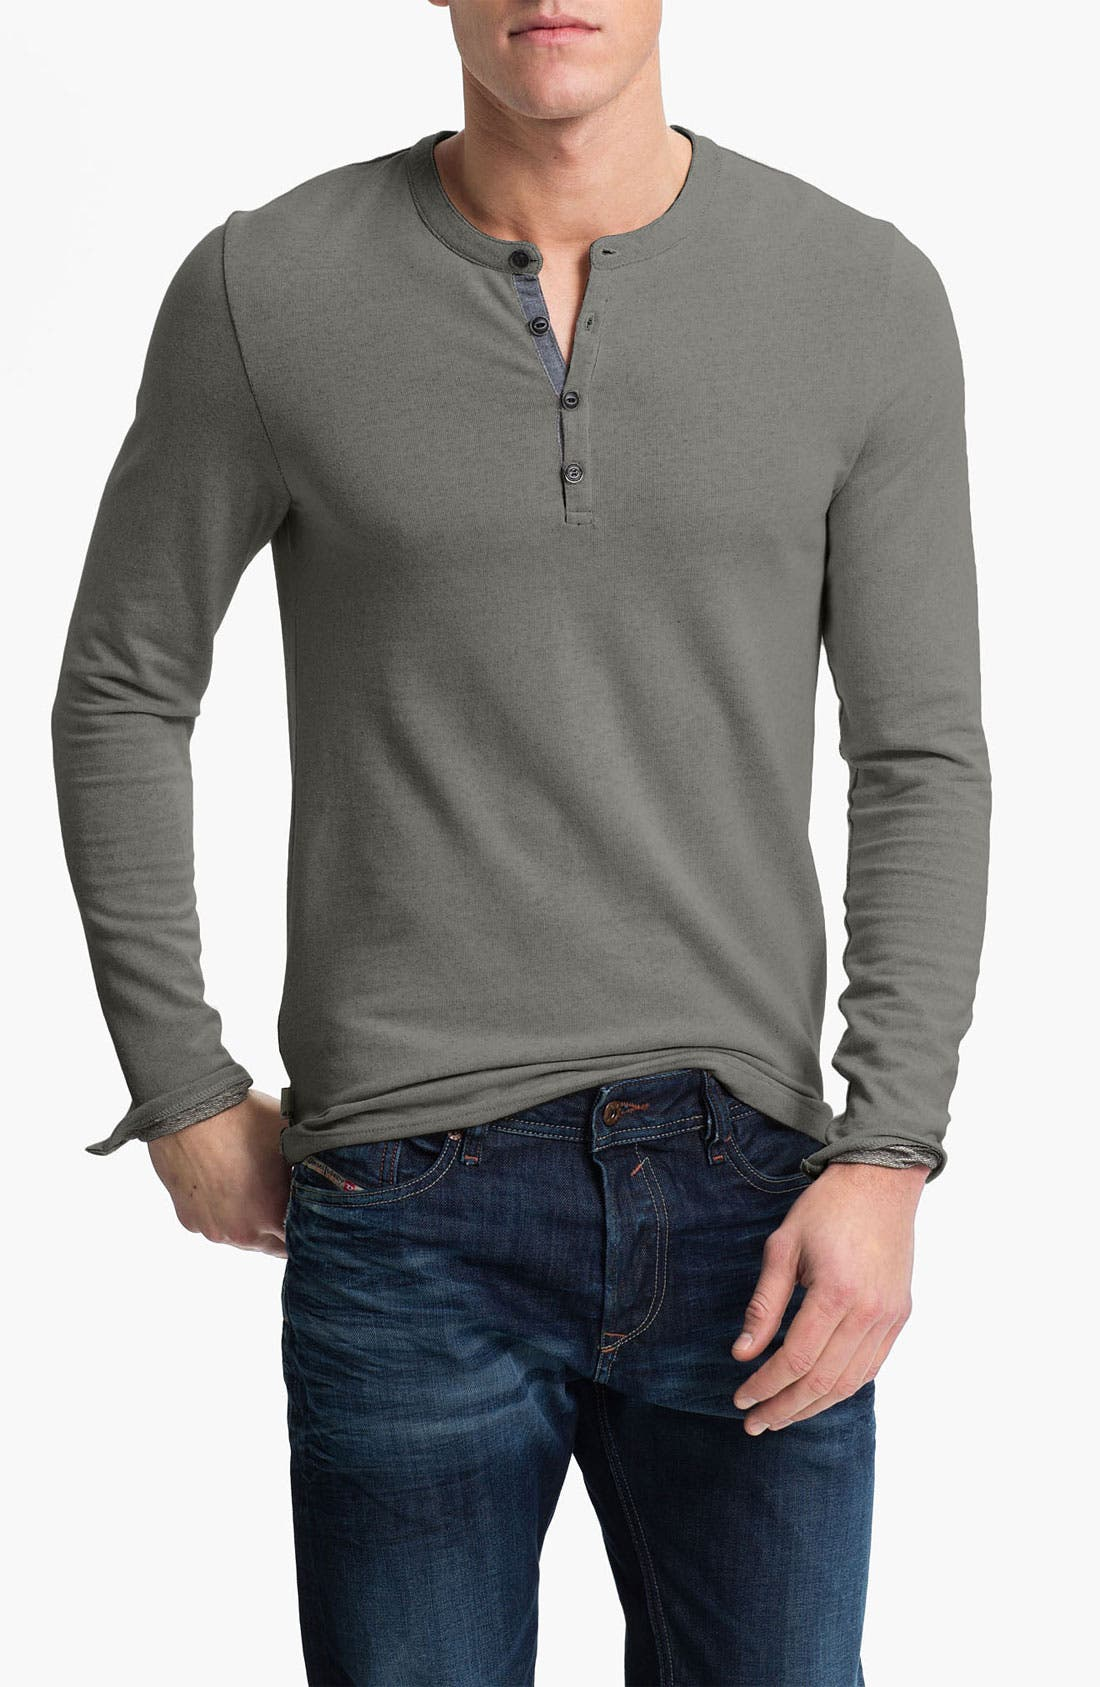 Alternate Image 1 Selected - R44 Rogan Standard Issue Henley Sweatshirt